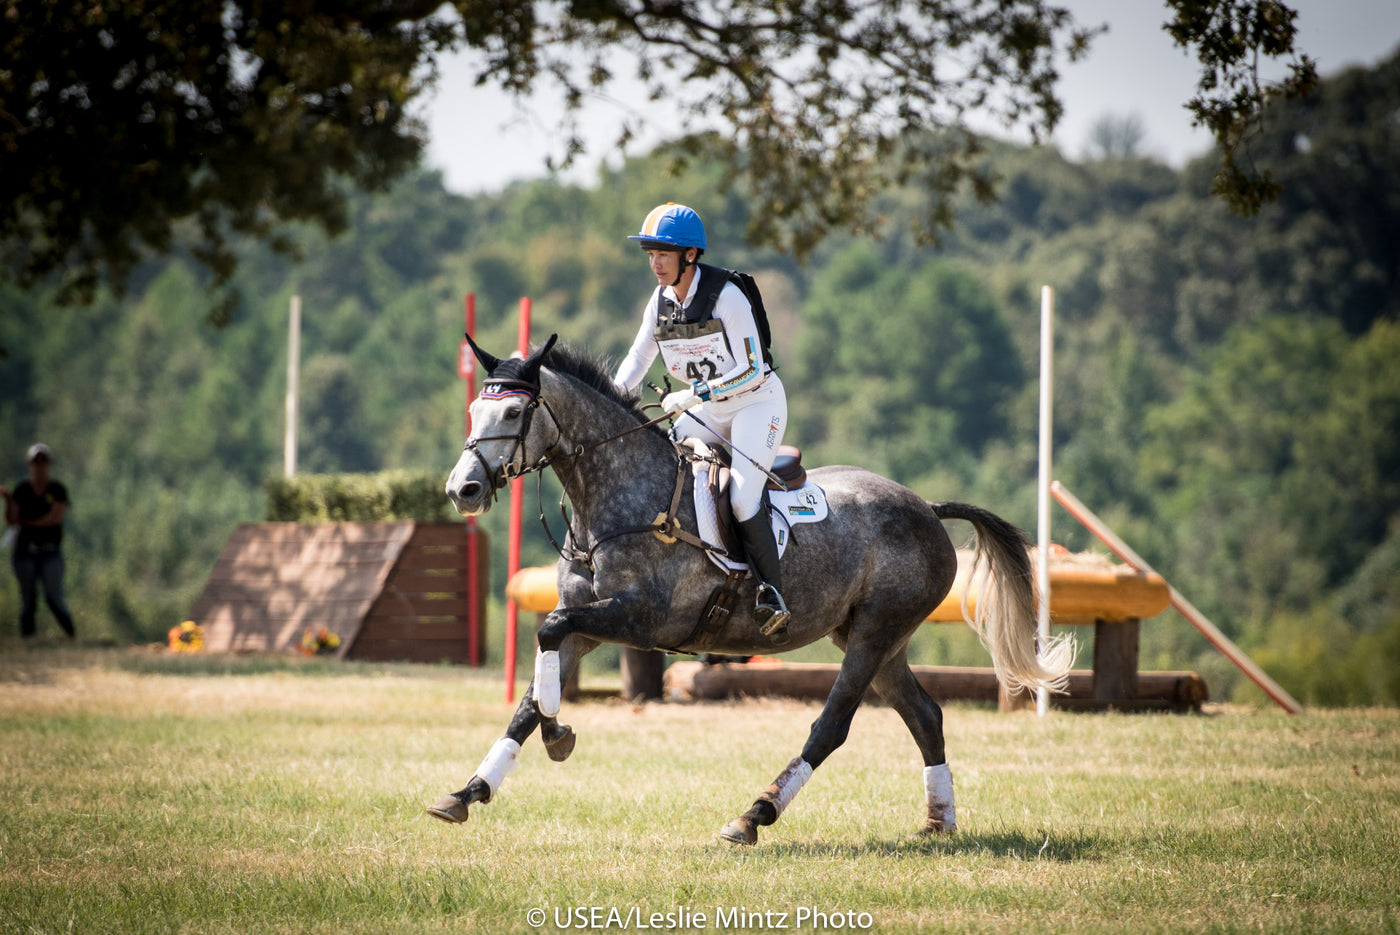 The Race to Le Lion: Fleeceworks Royal Flies to France for the FEI World Breeding Eventing Championships